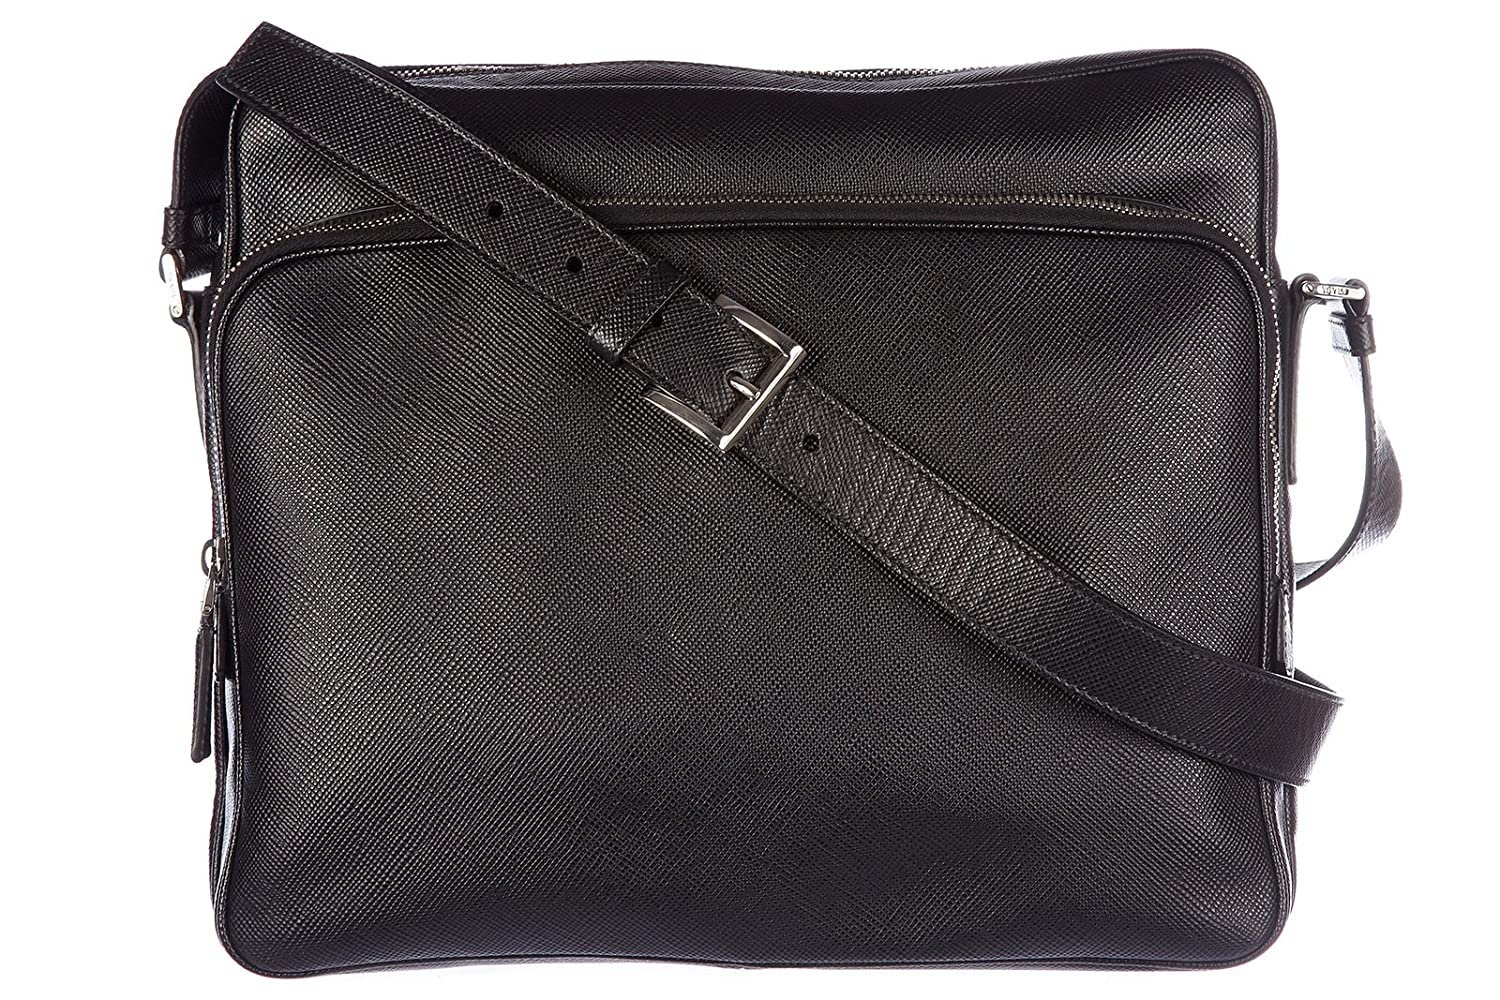 3a35de8b8e2d Amazon.com: Prada men's leather cross-body messenger shoulder bag bandoliera  saffiano black: Shoes